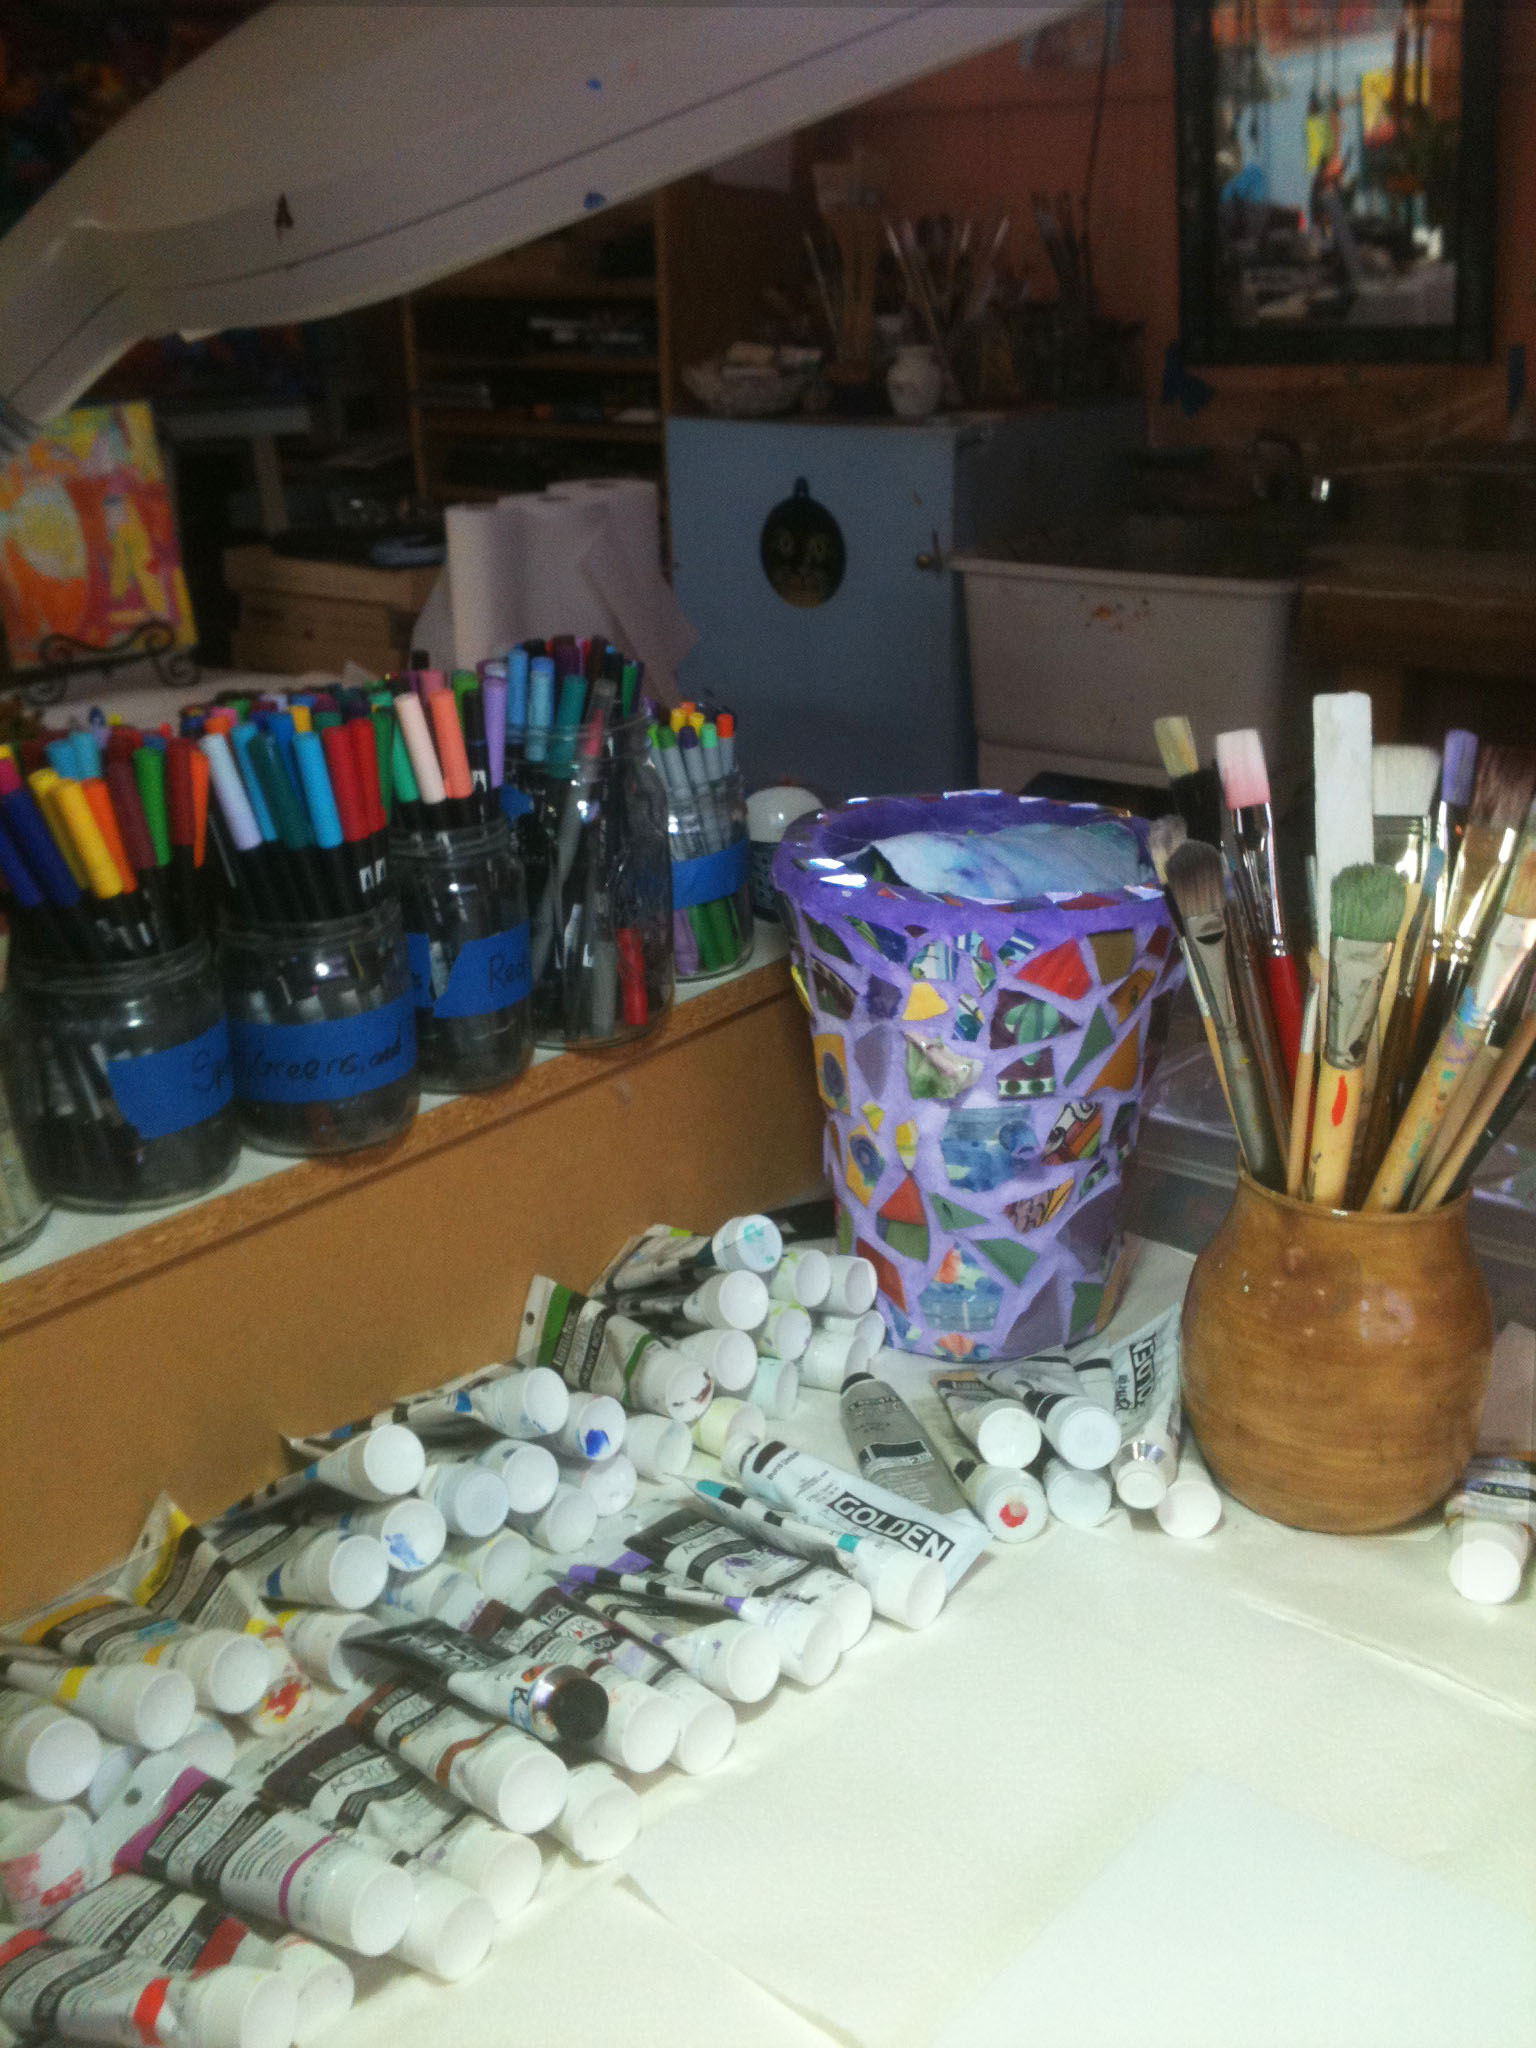 Painting Supplies at Cats & Dragons Art Studio